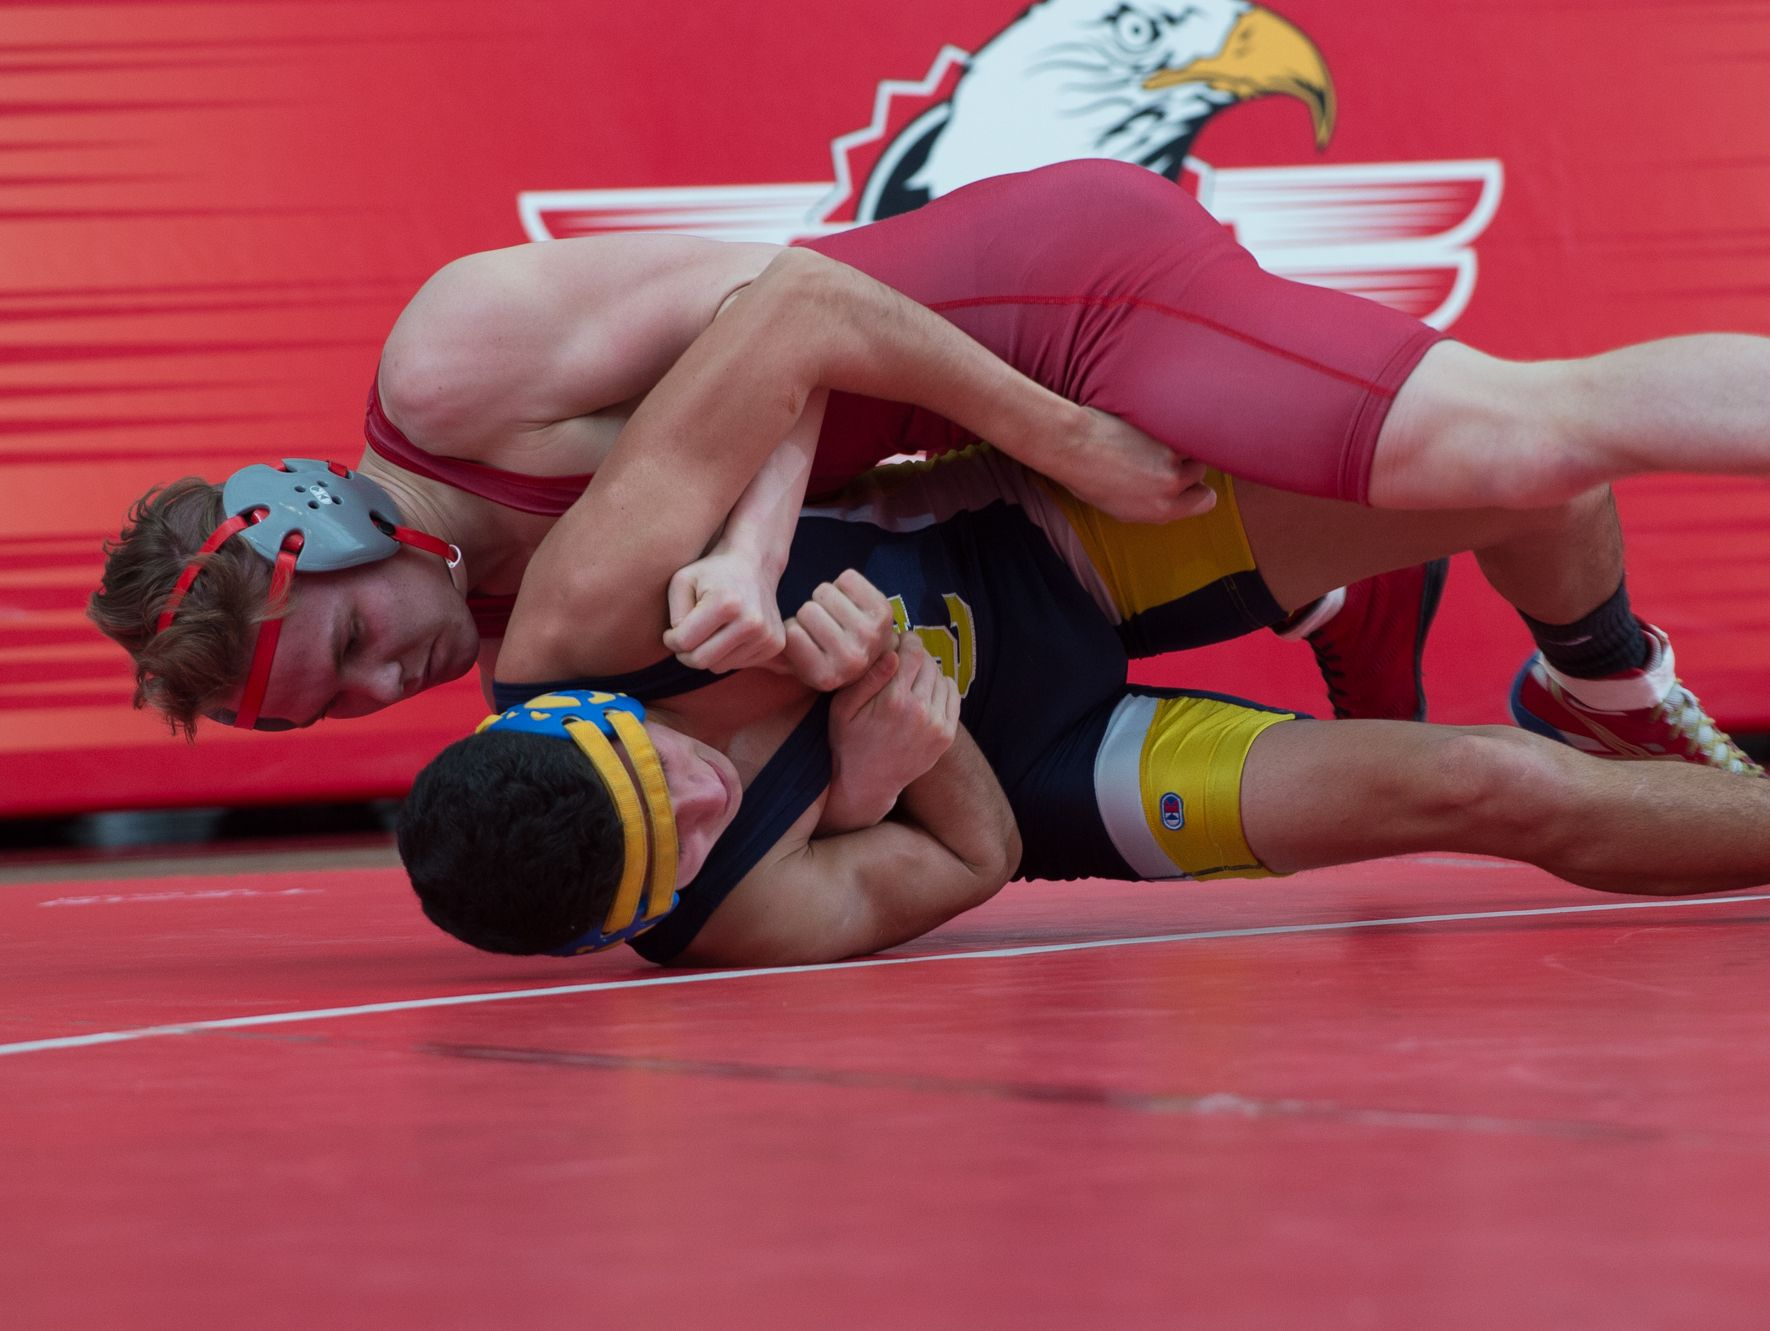 Smyrna's Cole Sebastianelli (top) tries to turn Sussex Central's Javier Perez on to his back in the 126 pound match at Smyrna High School. Smyrna defeated Sussex Central 39-27.